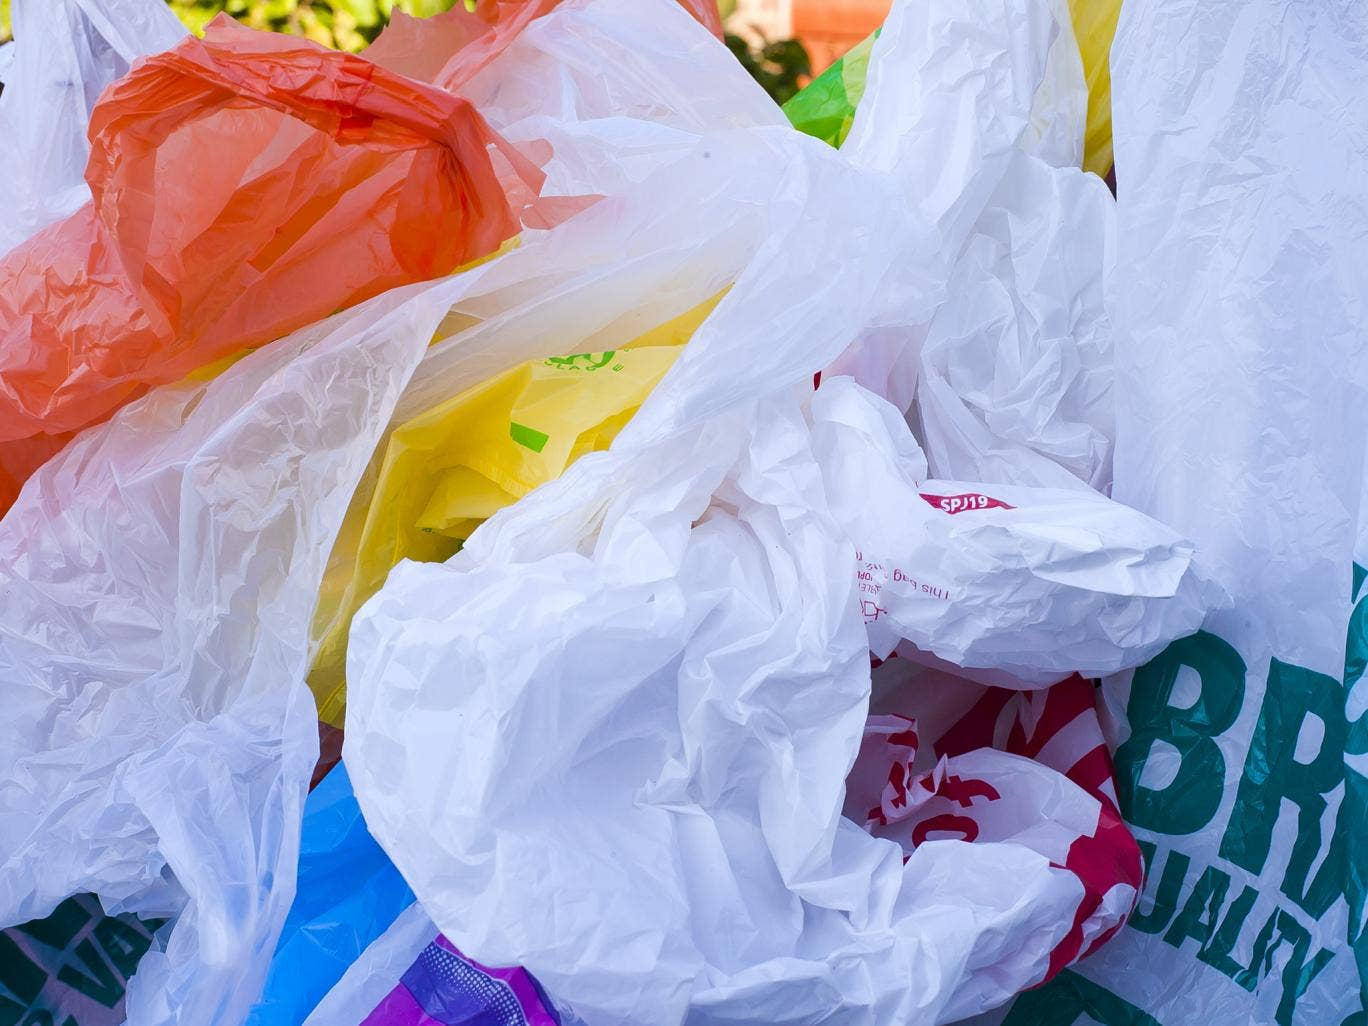 Does United Charge For Bage | Plastic Bag Charge To Rise To 10p And Be Extended To Every Shop